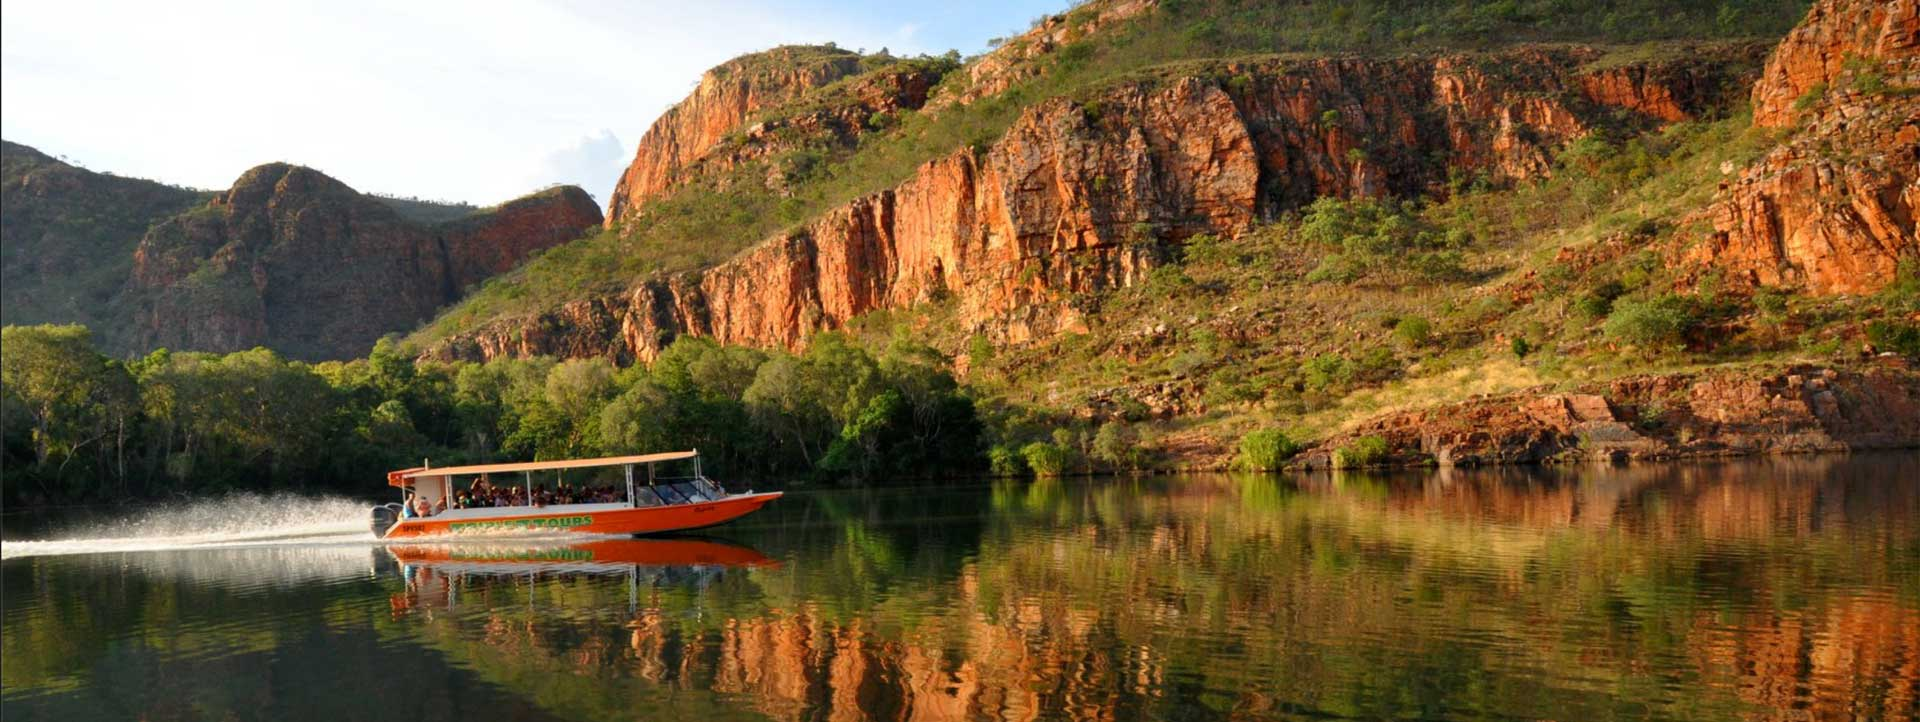 ORD-RIVER-LUNCHTIME-CRUISE-SLIDER-